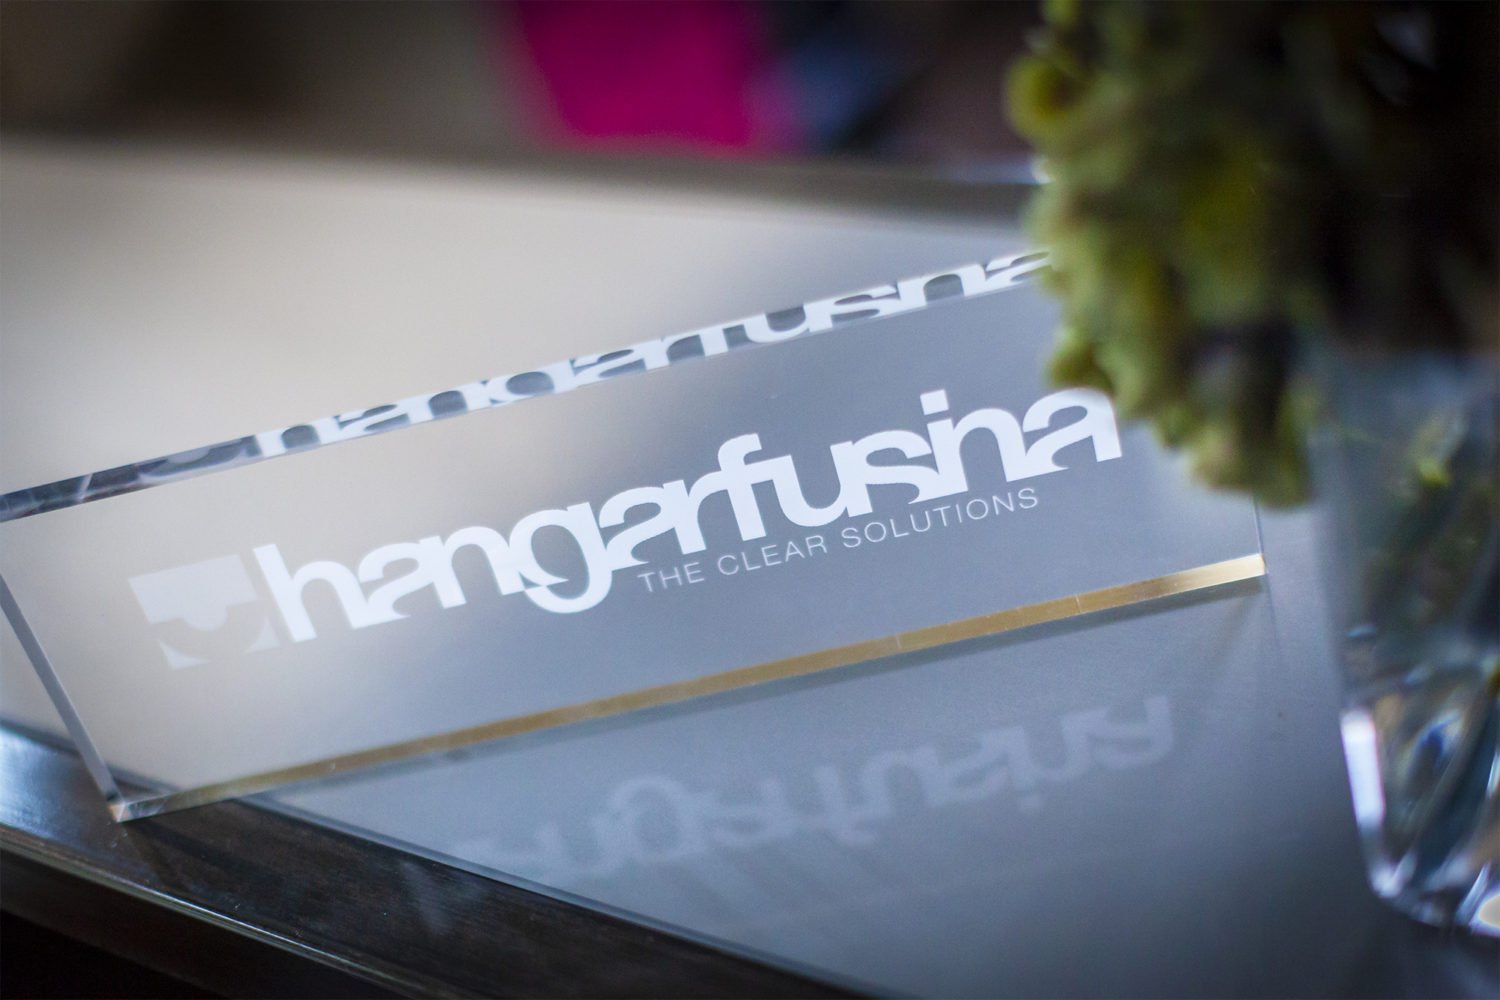 Hangarfusina_headquarters